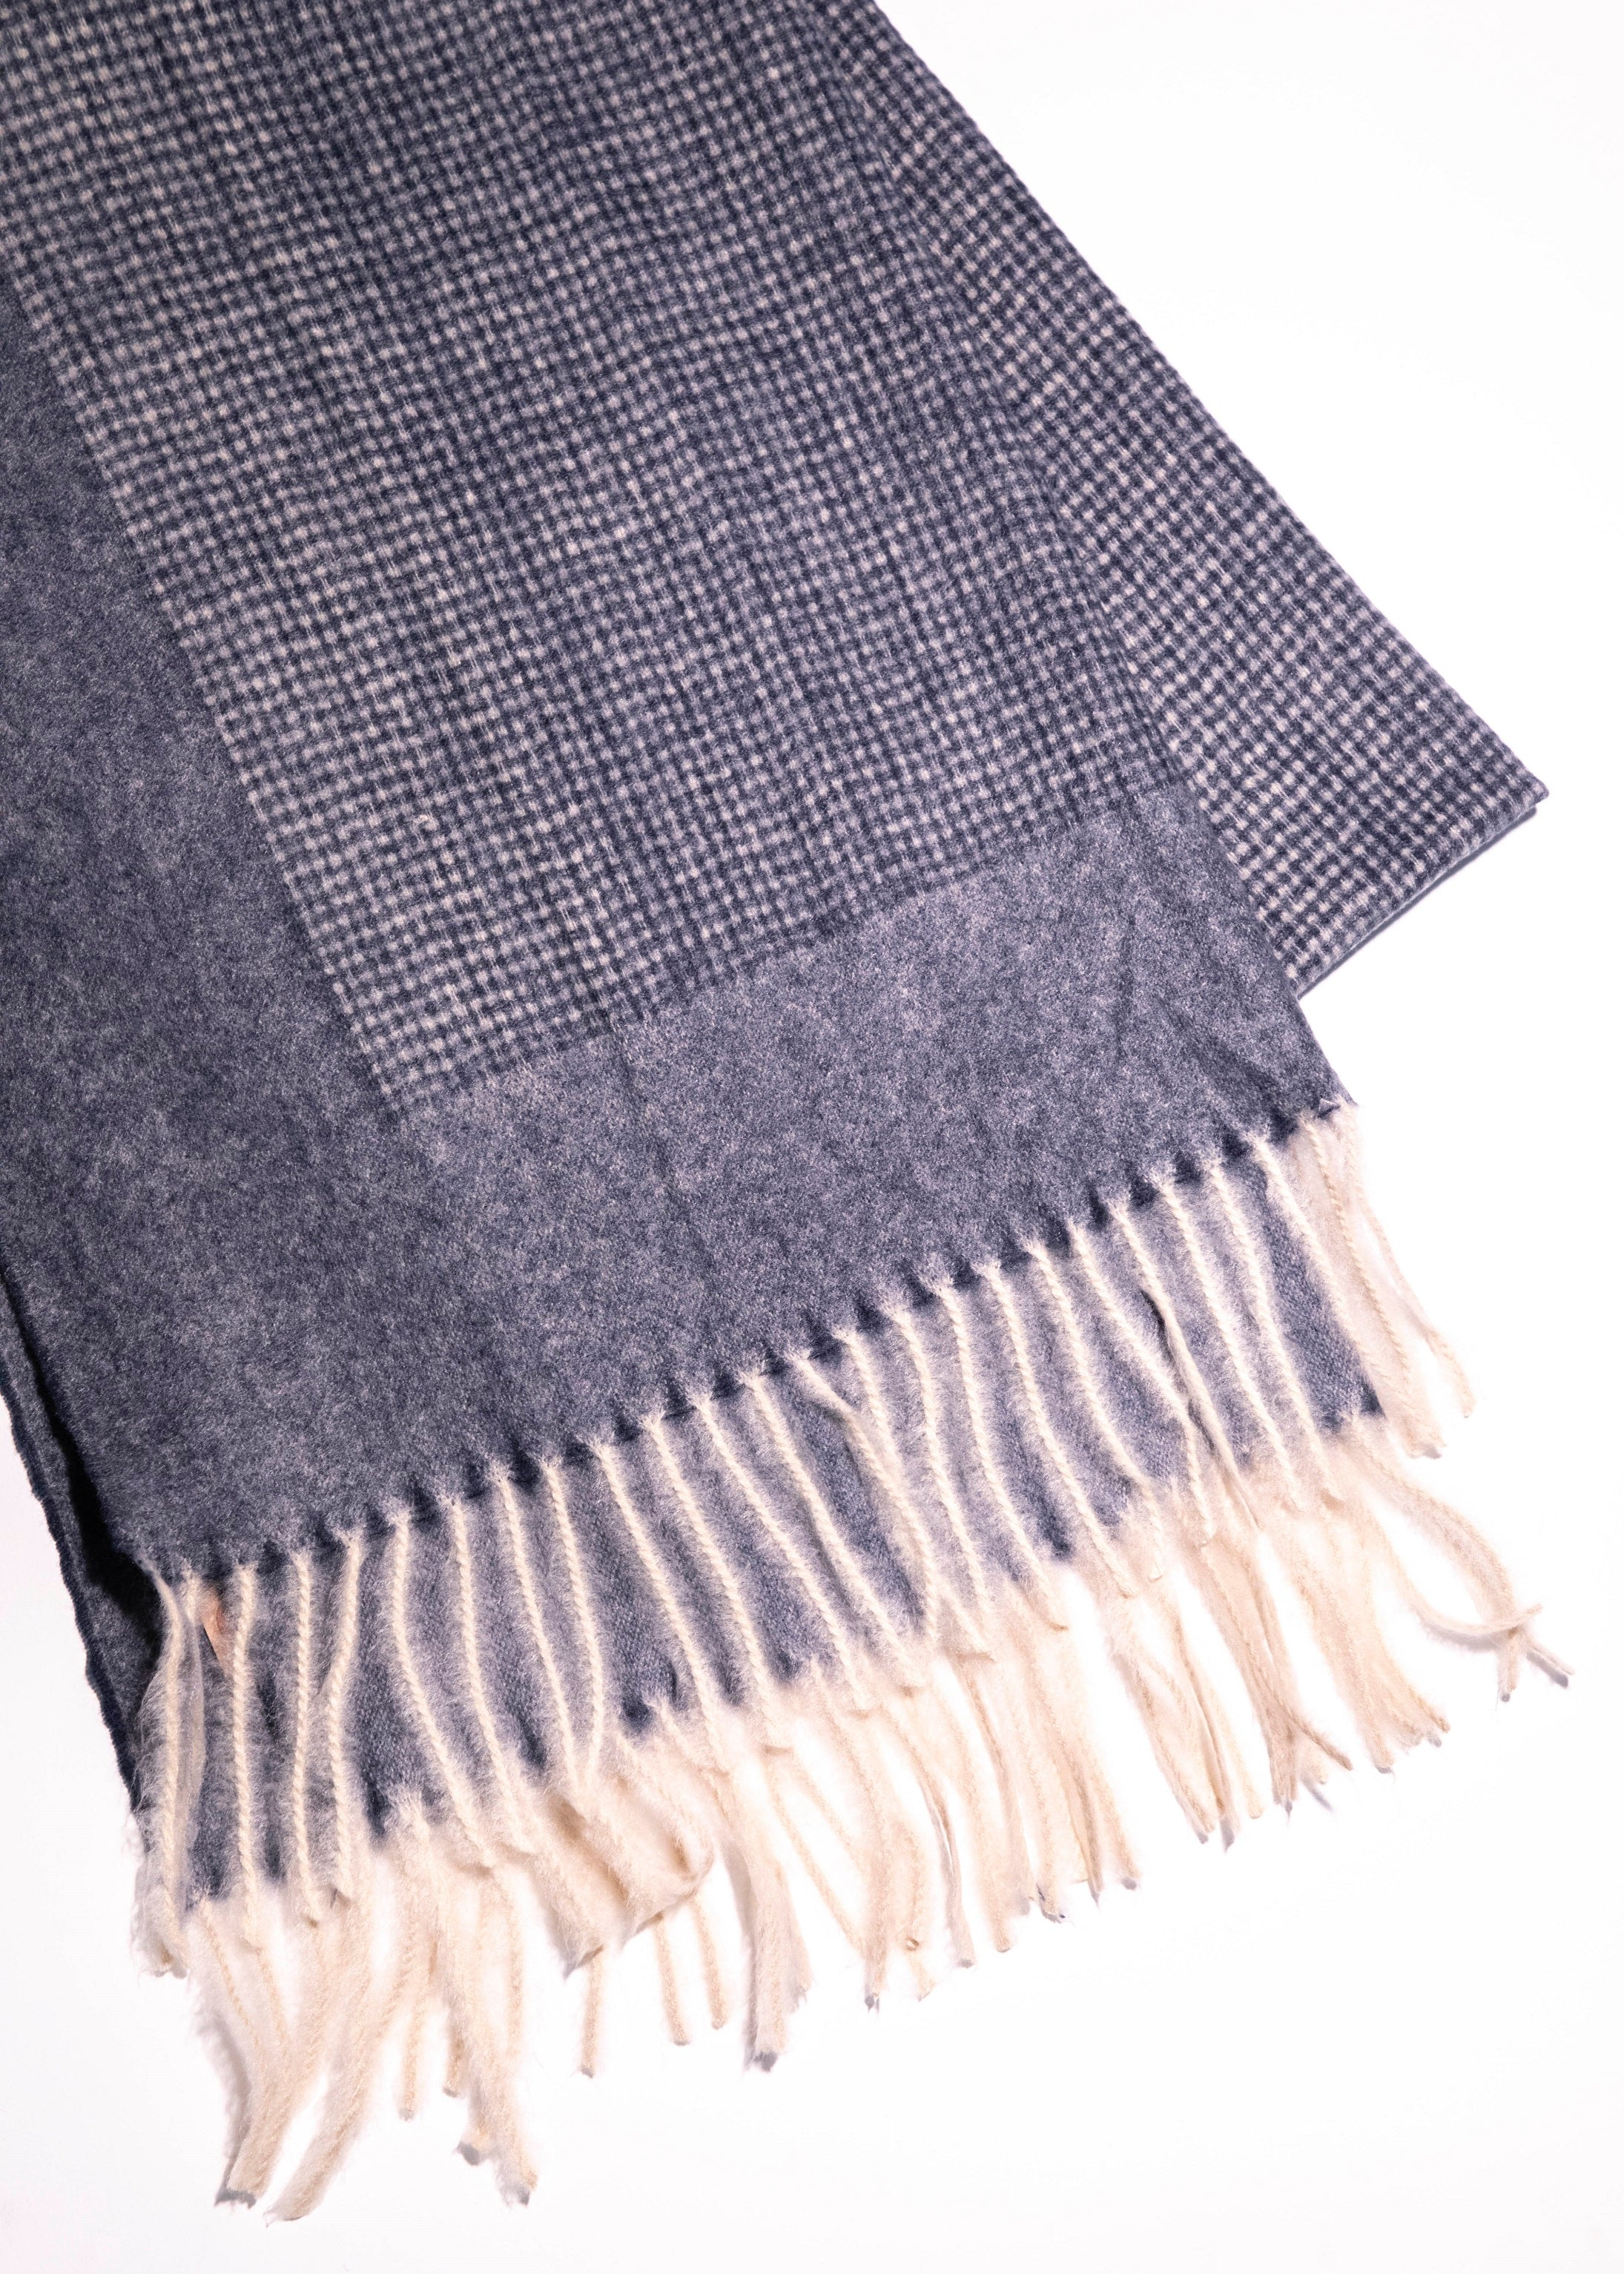 Bordered Tweed Cozy Scarf - picnic-sf